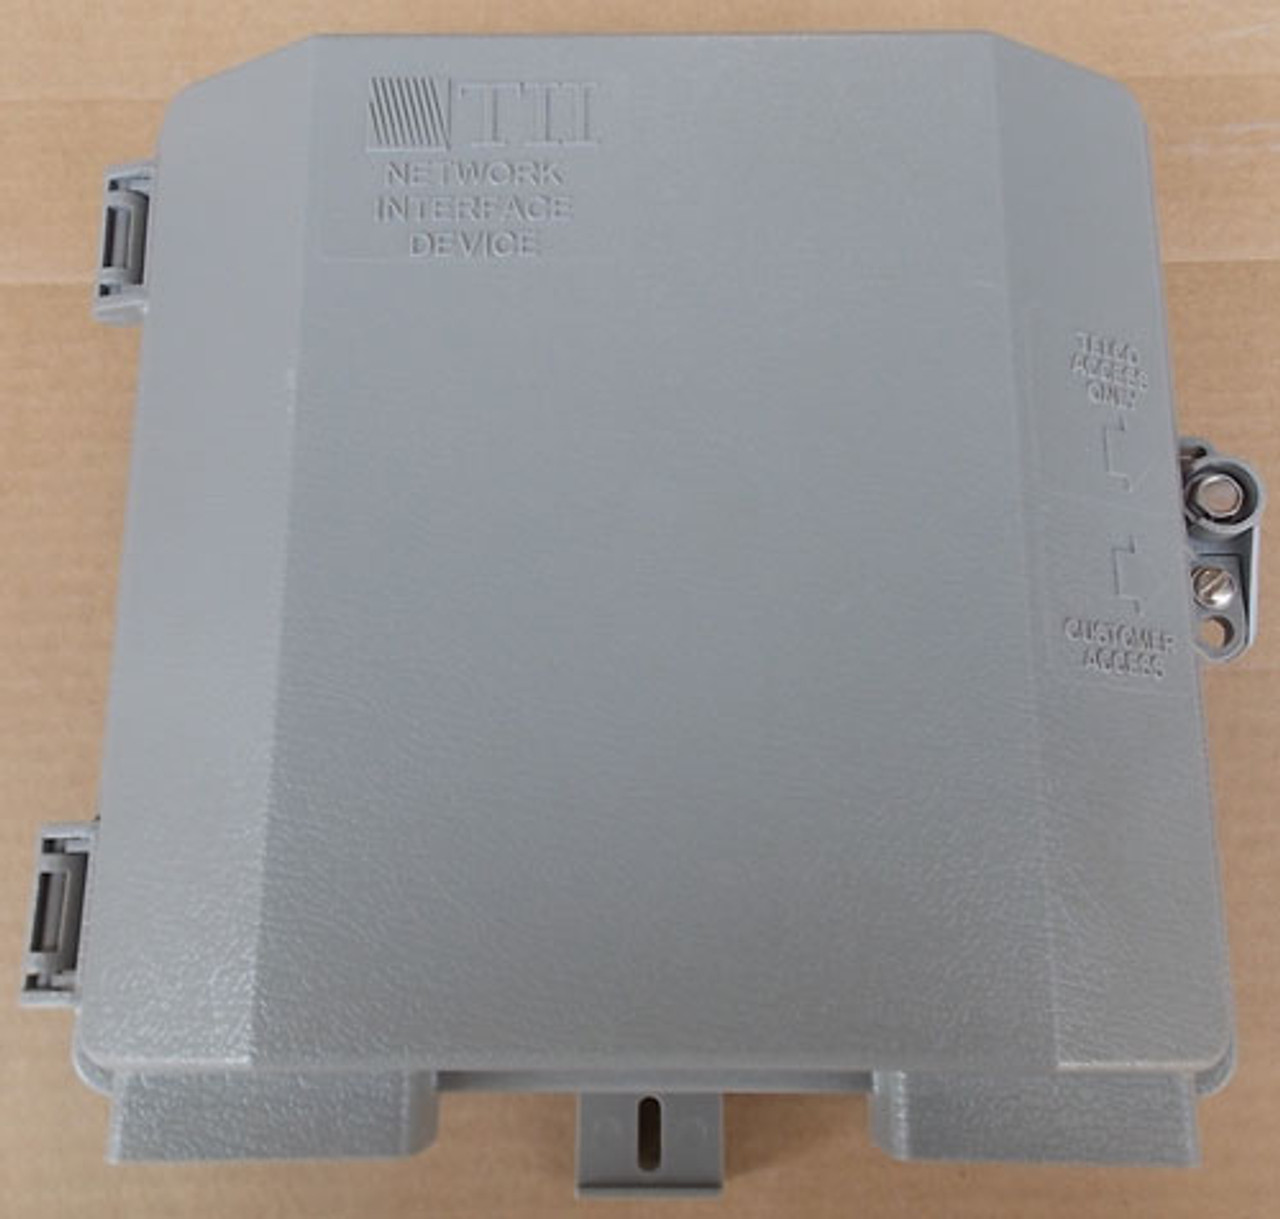 TII Network Technologies 3611H-72-1I01 Network Interface Device - New